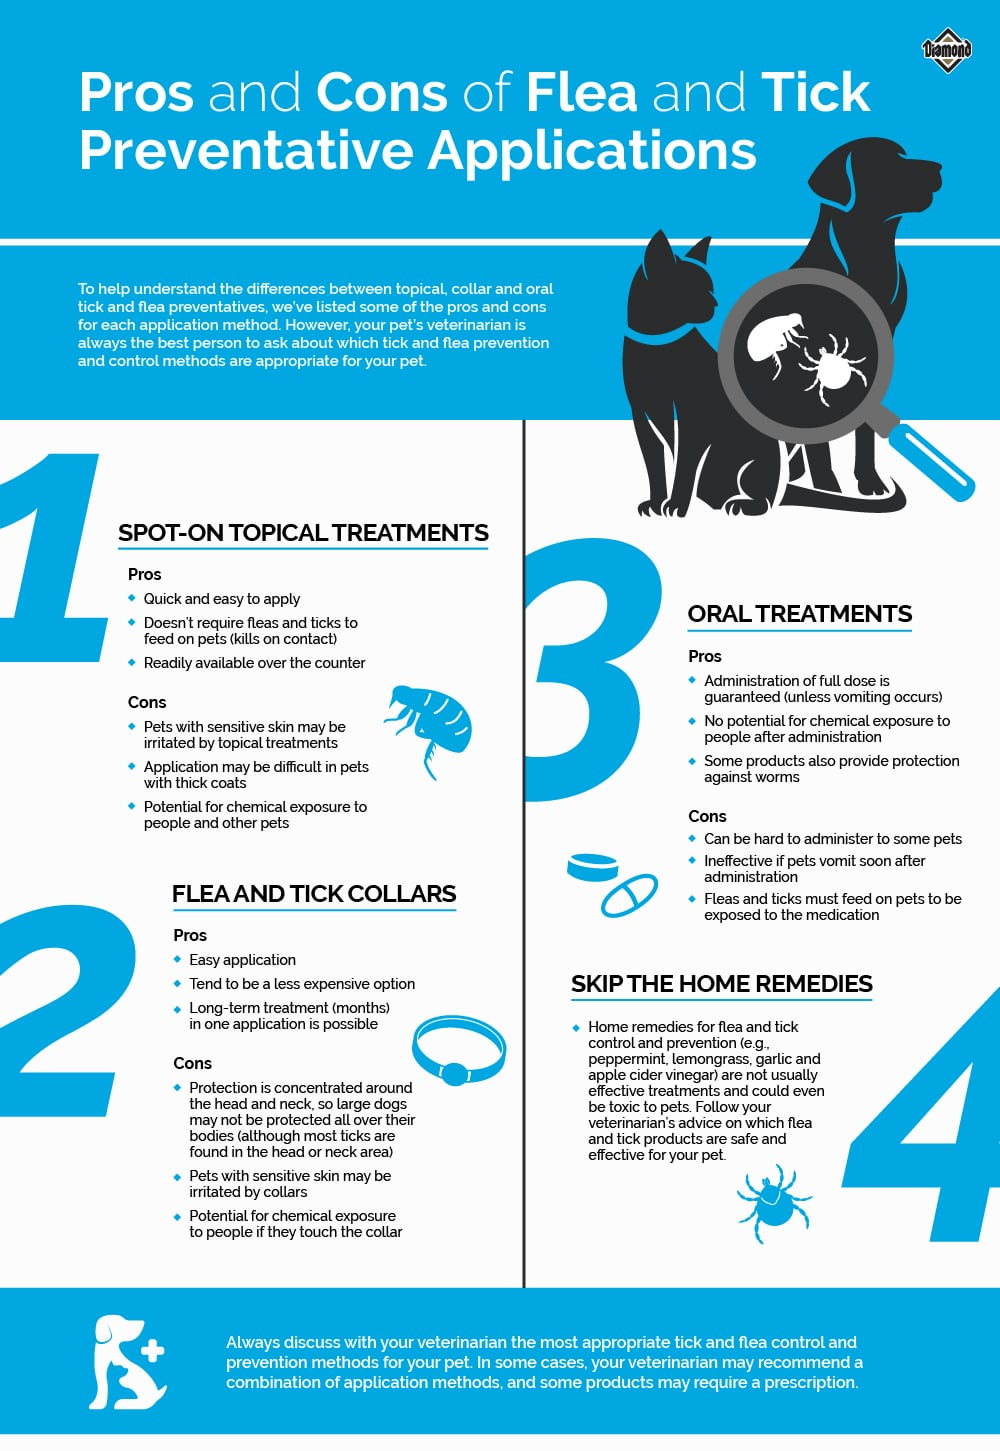 Pros and Cons of Flea and Tick Preventative Applications Infographic   Diamond Pet Foods